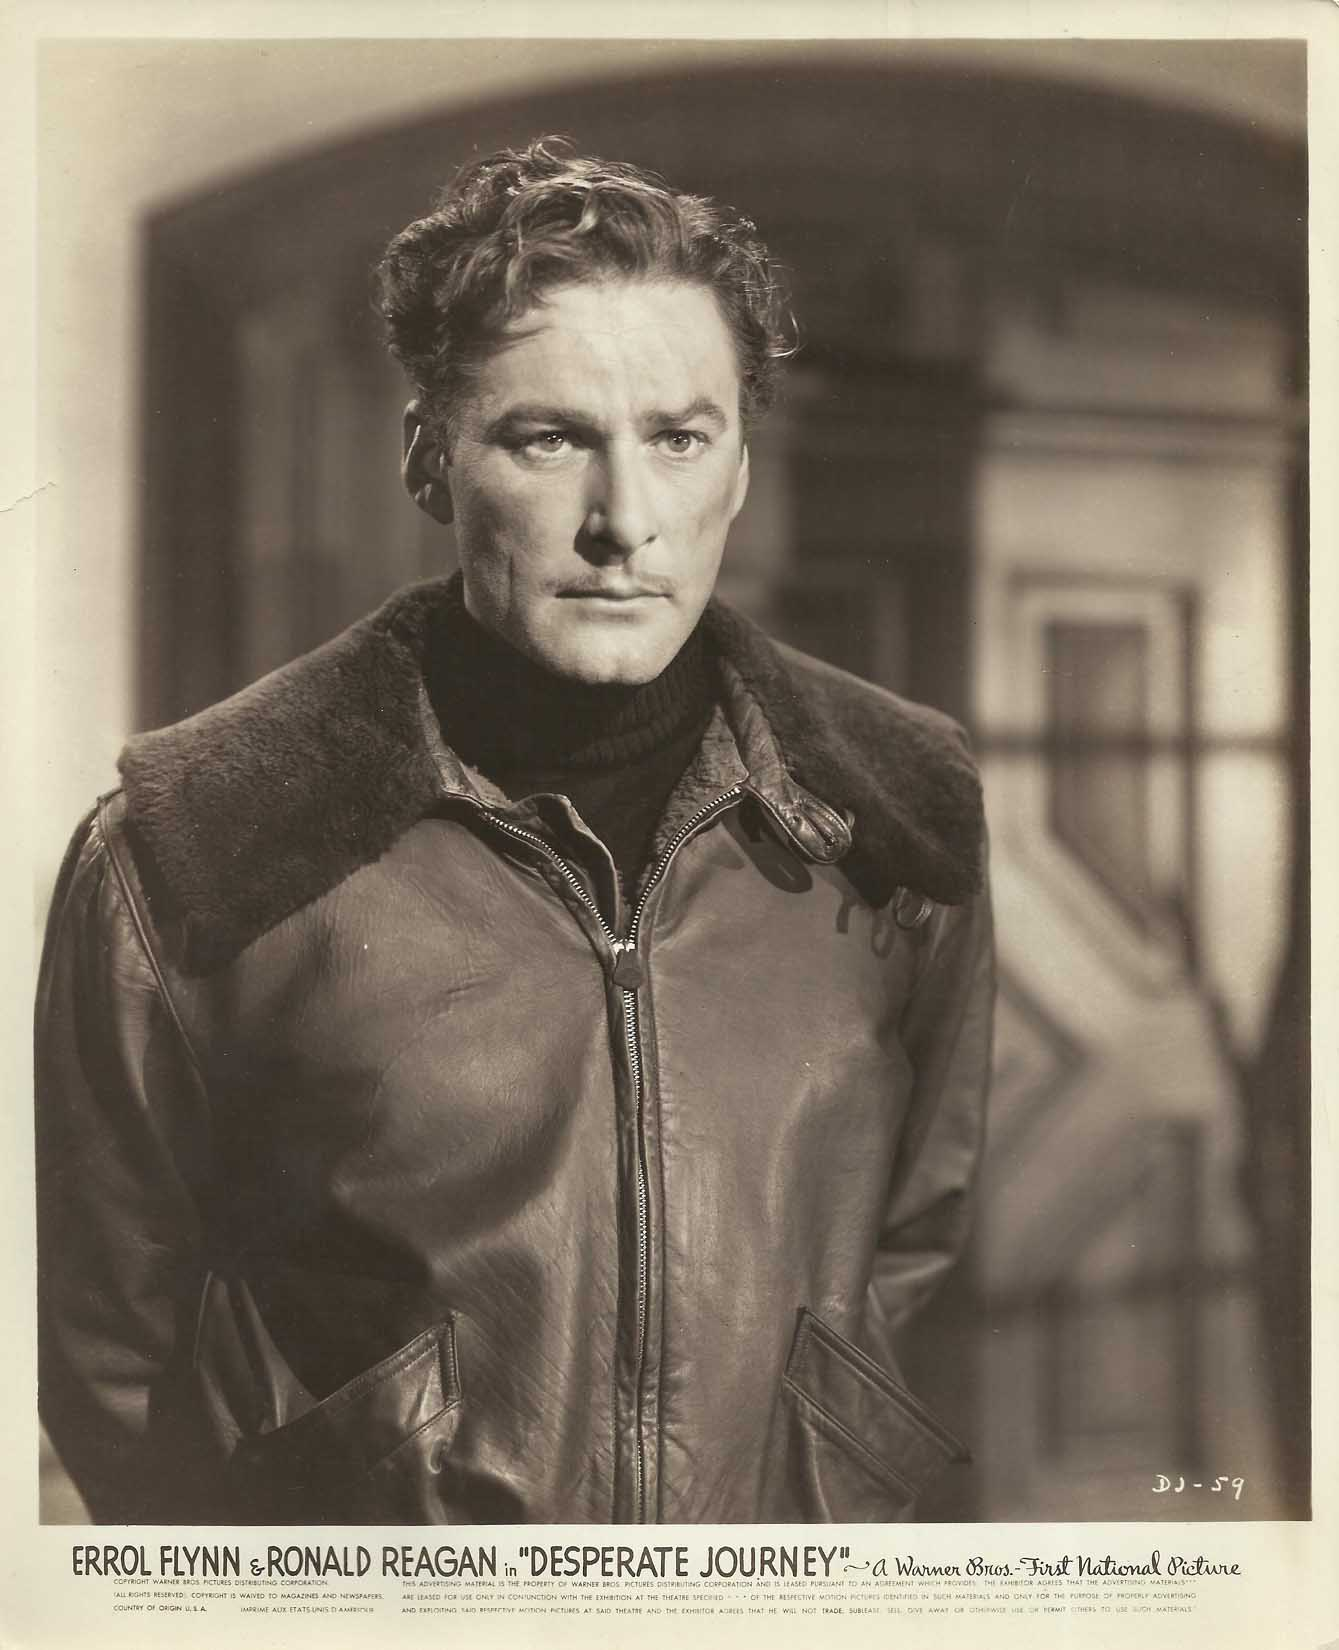 Errol Flynn in Desperate Journey (1942)